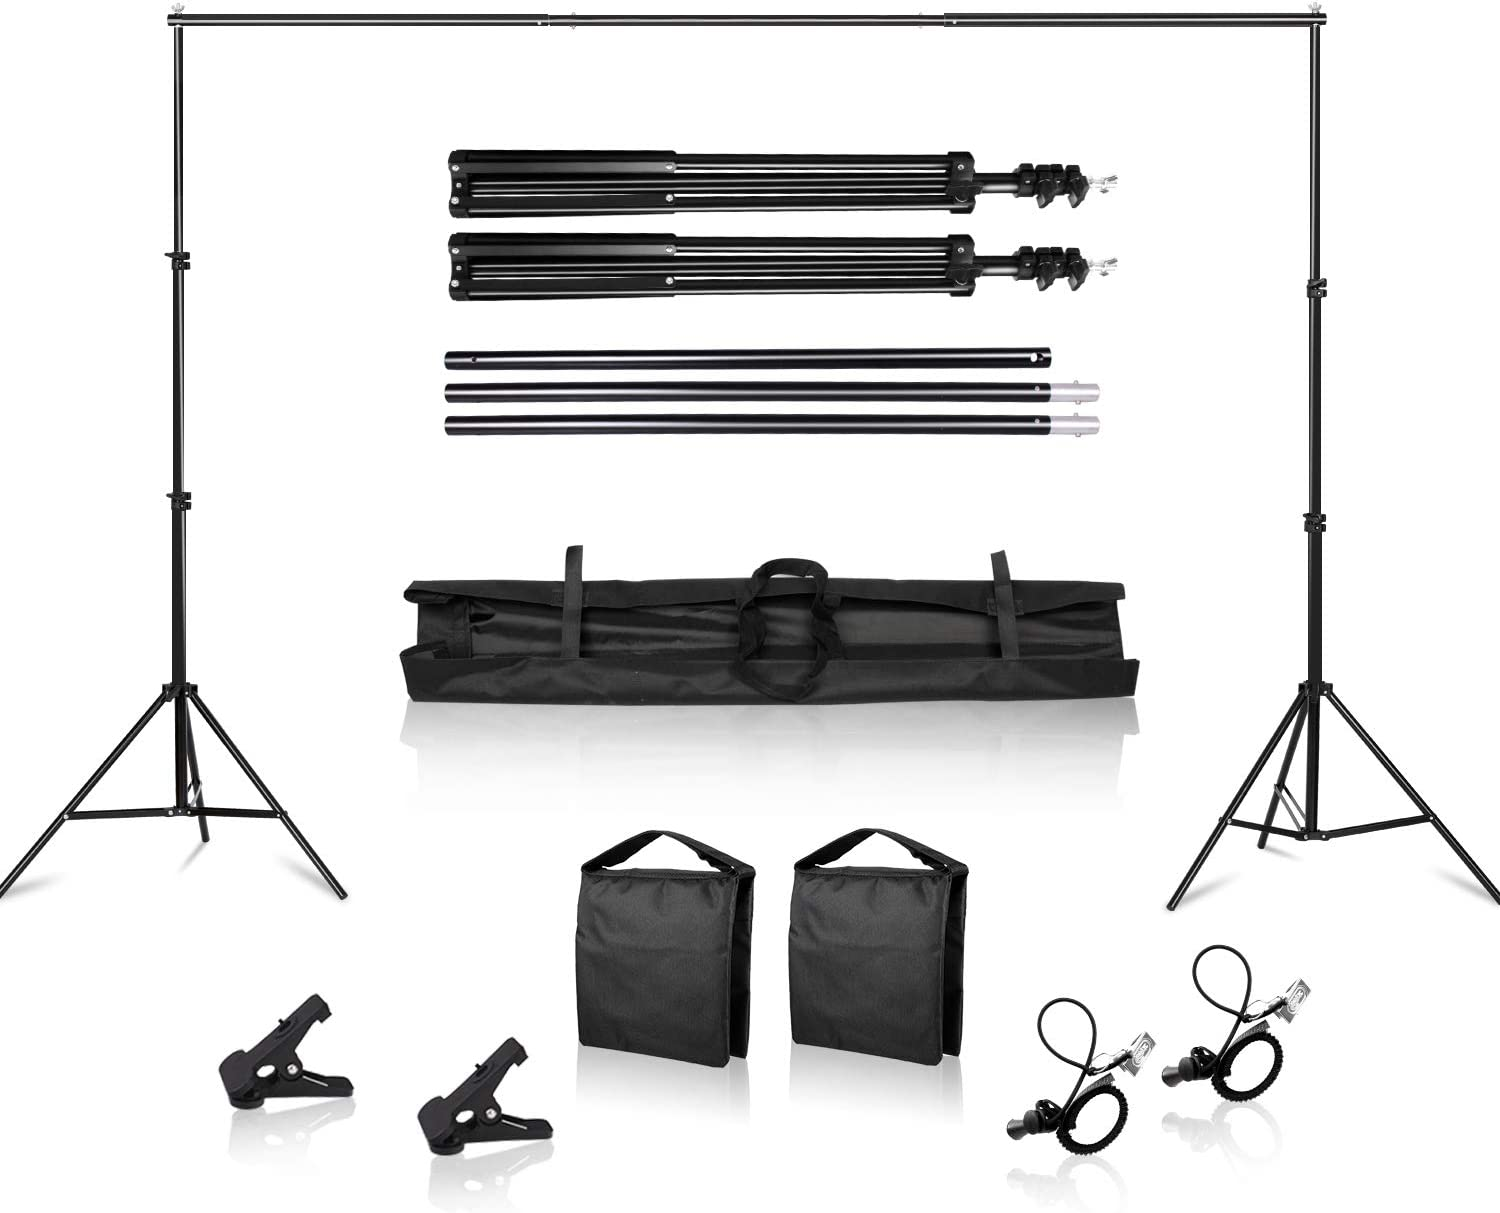 Size : L60xh70cm Background Supports Background Stand Stand System Metal for Portrait with Carrying Case,Product Photography